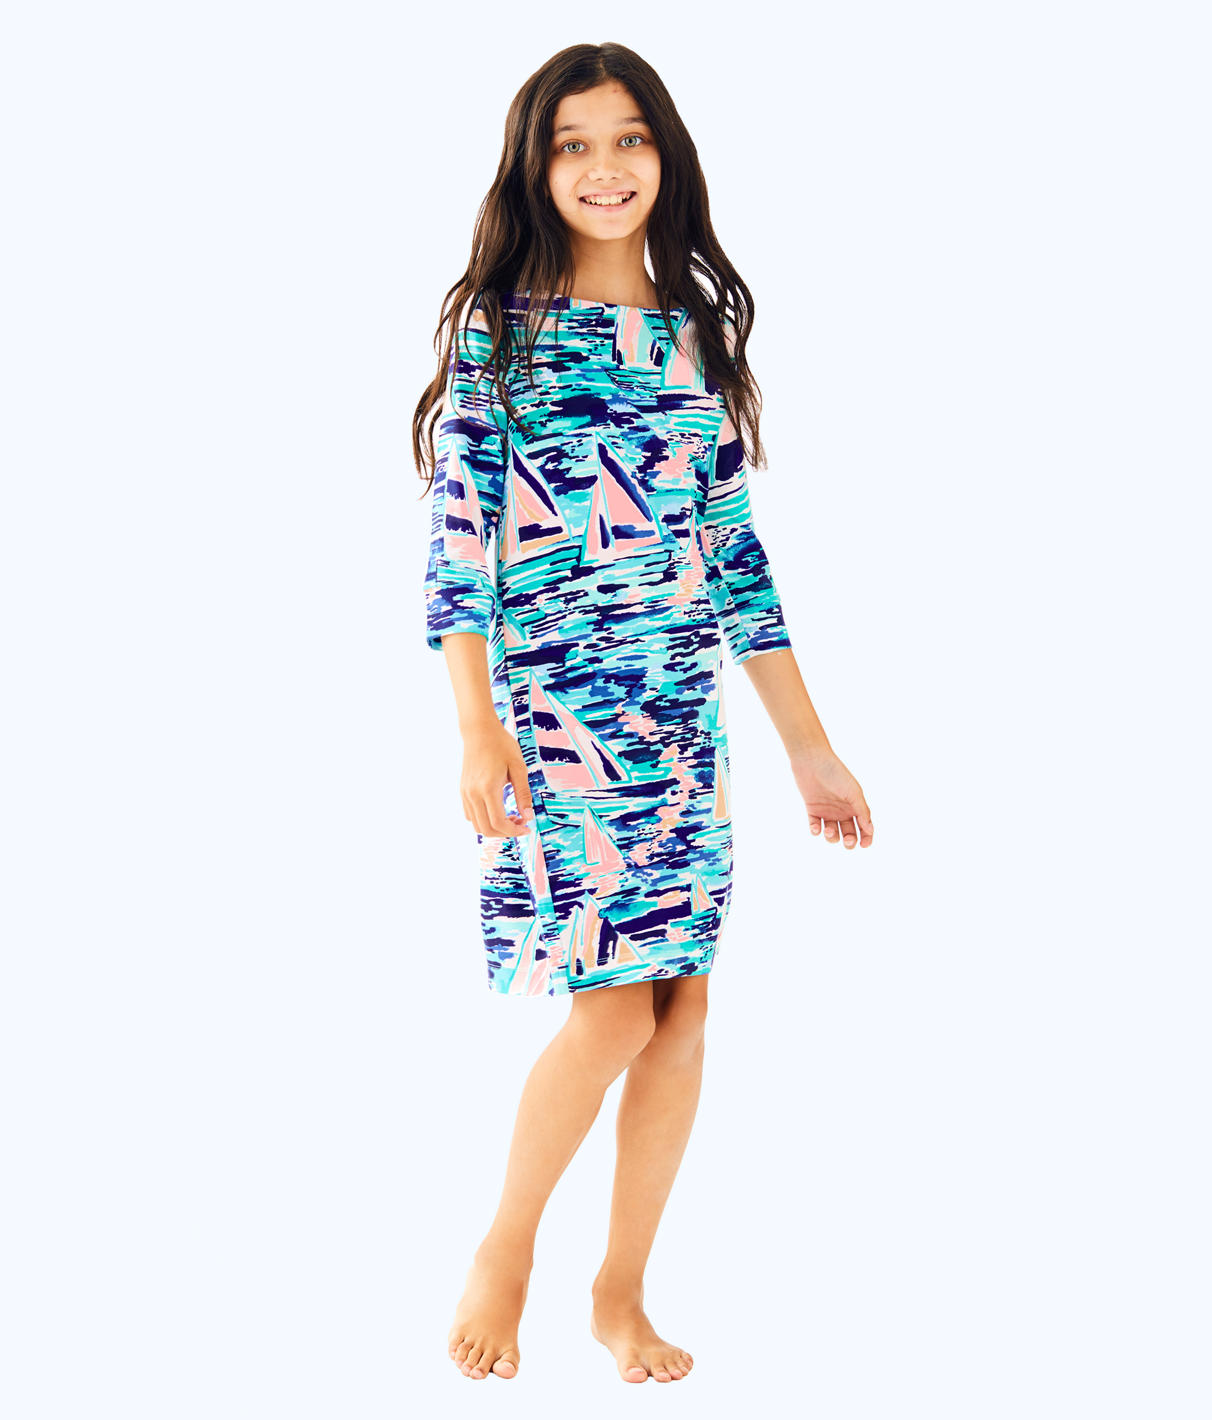 Lilly Pulitzer Lilly Pulitzer UPF 50+ Girls Mini Sophie Dress